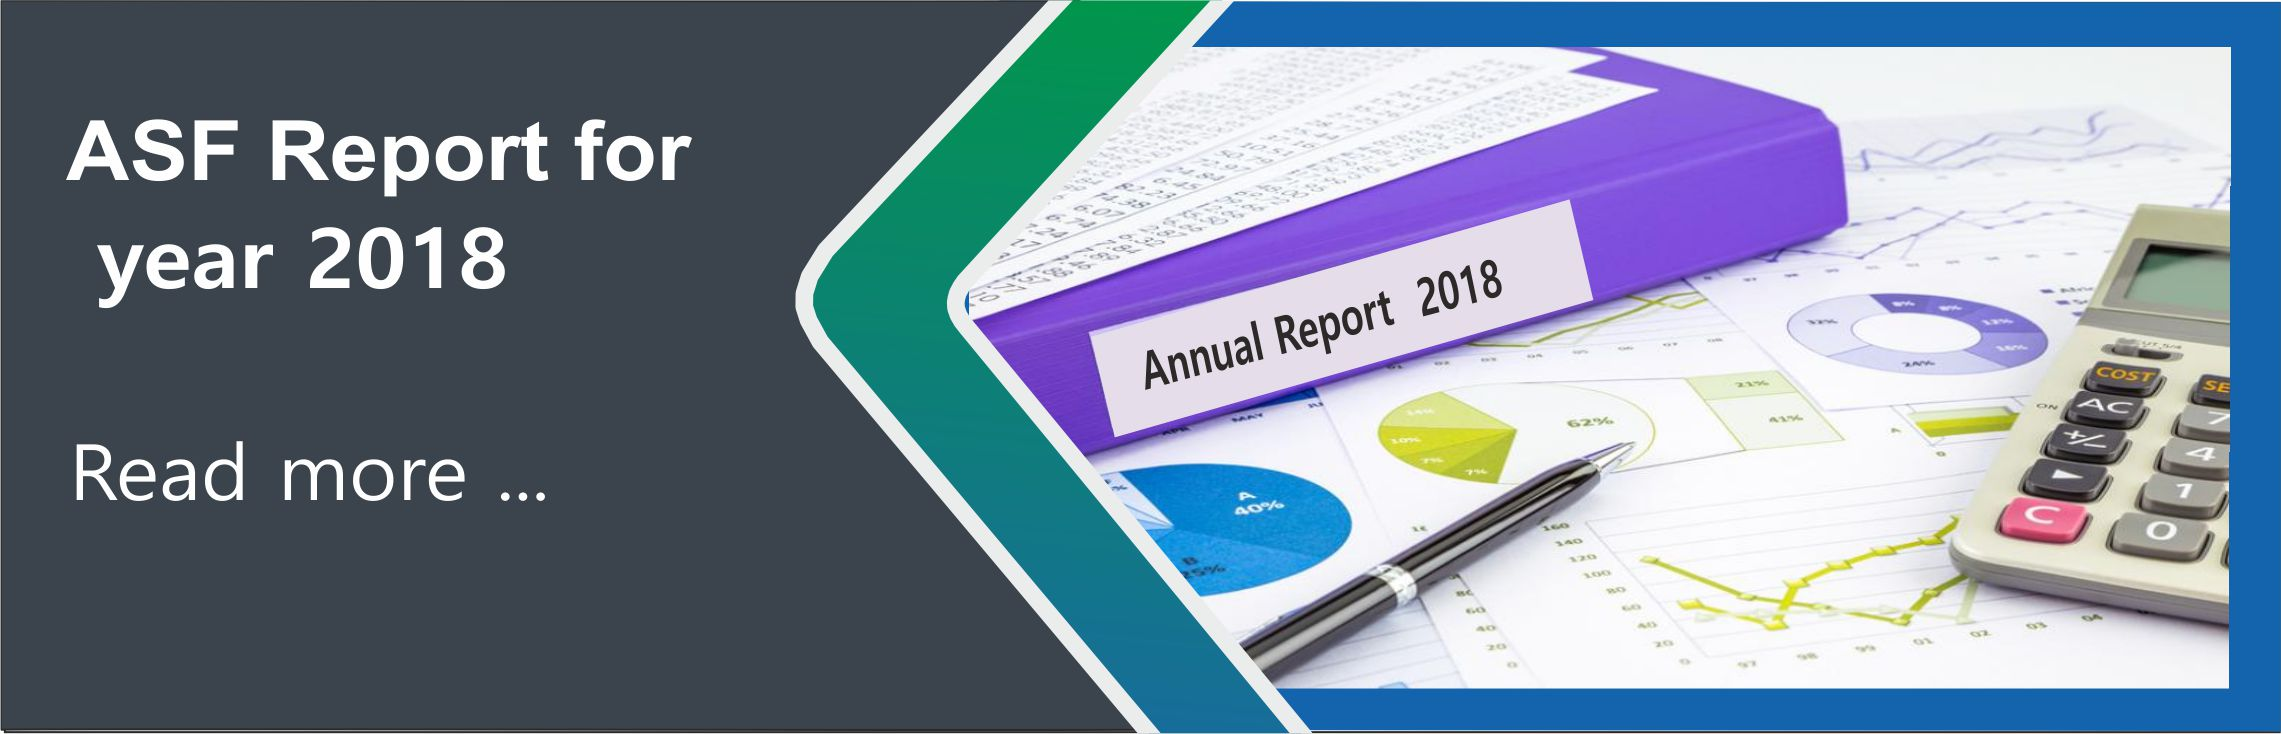 ASF Annual Report 2018